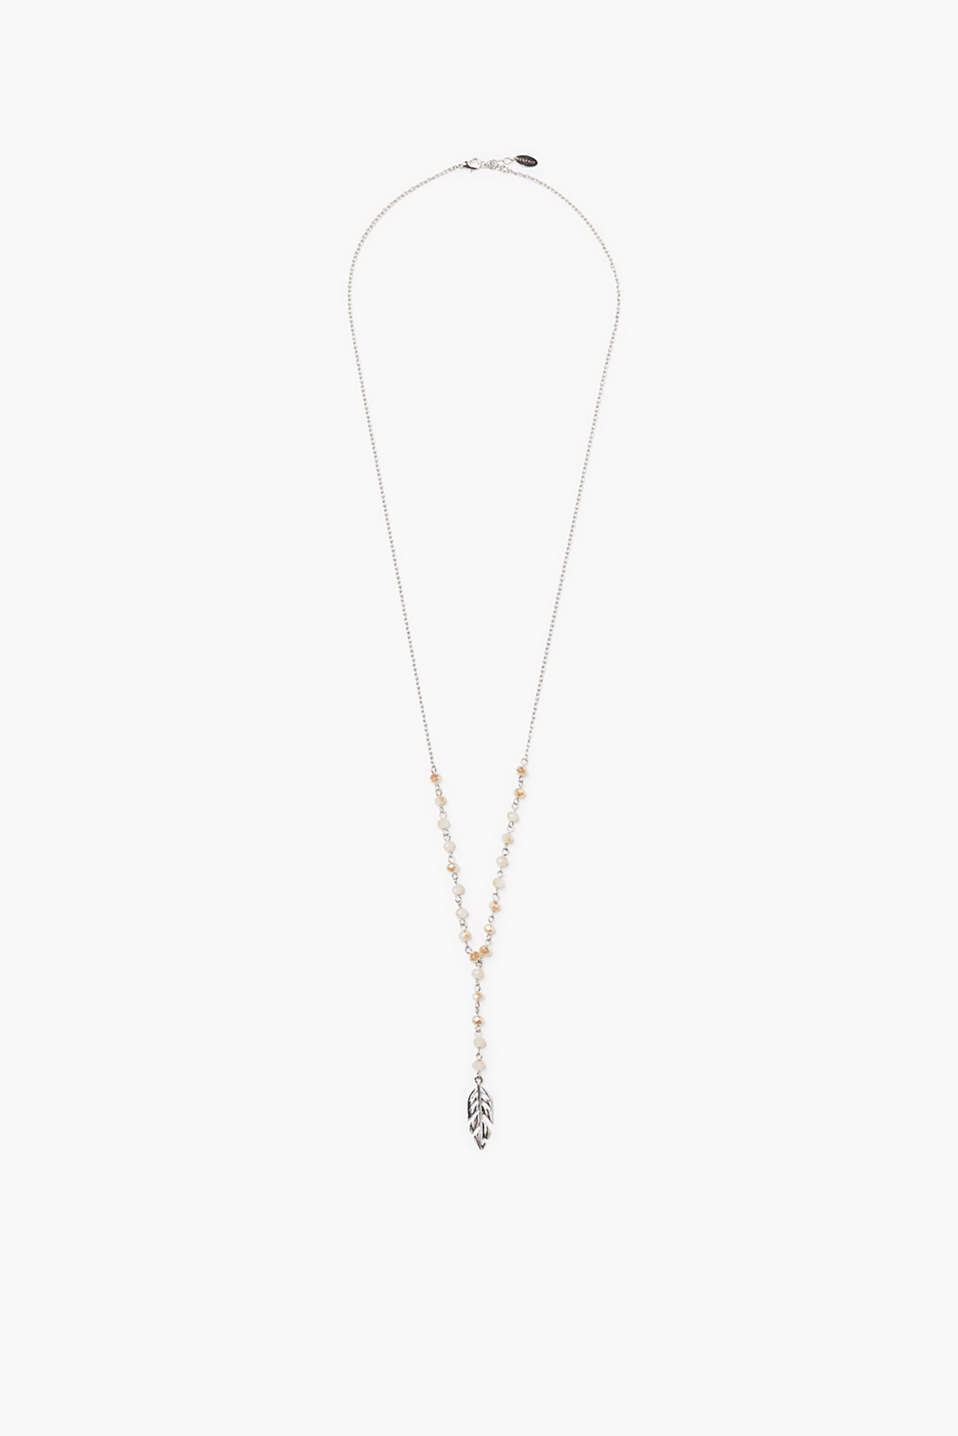 In a pendulum form: silver-coloured metal necklace